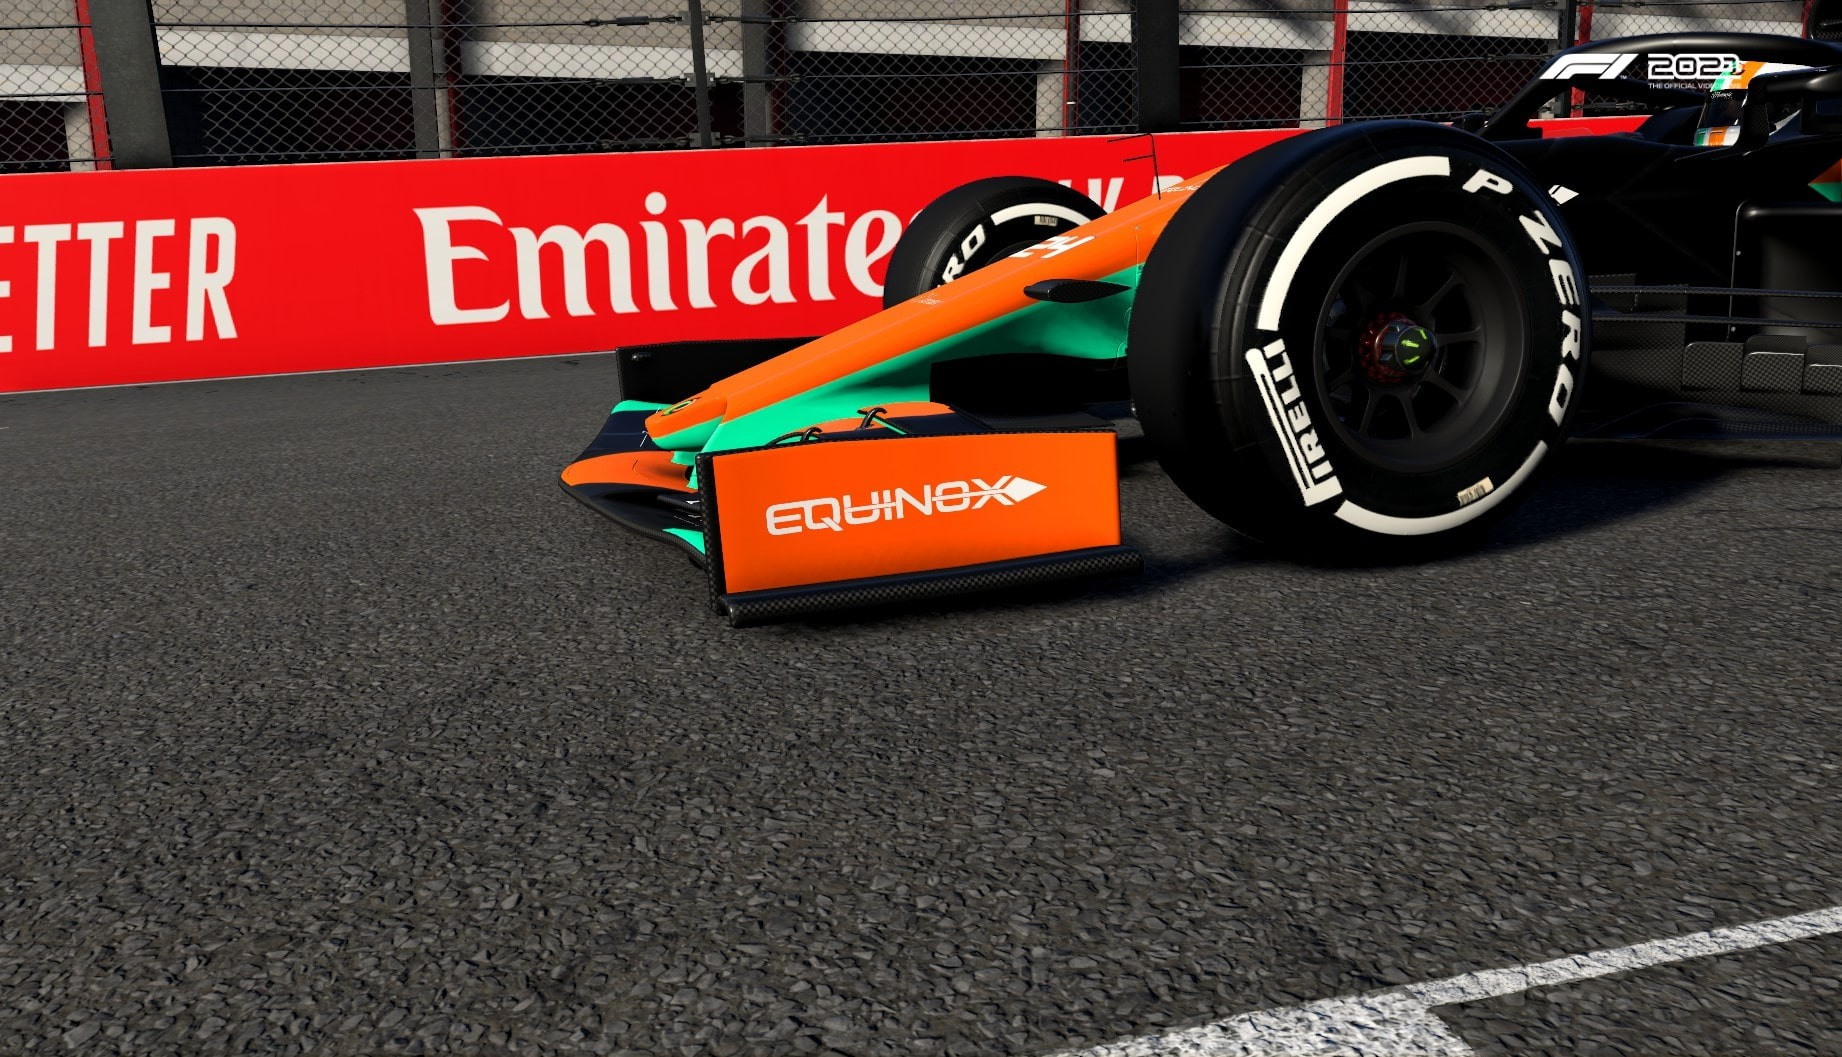 An image of the Equinox sponsor logo on the front wing of an F1 car in F1 2021.